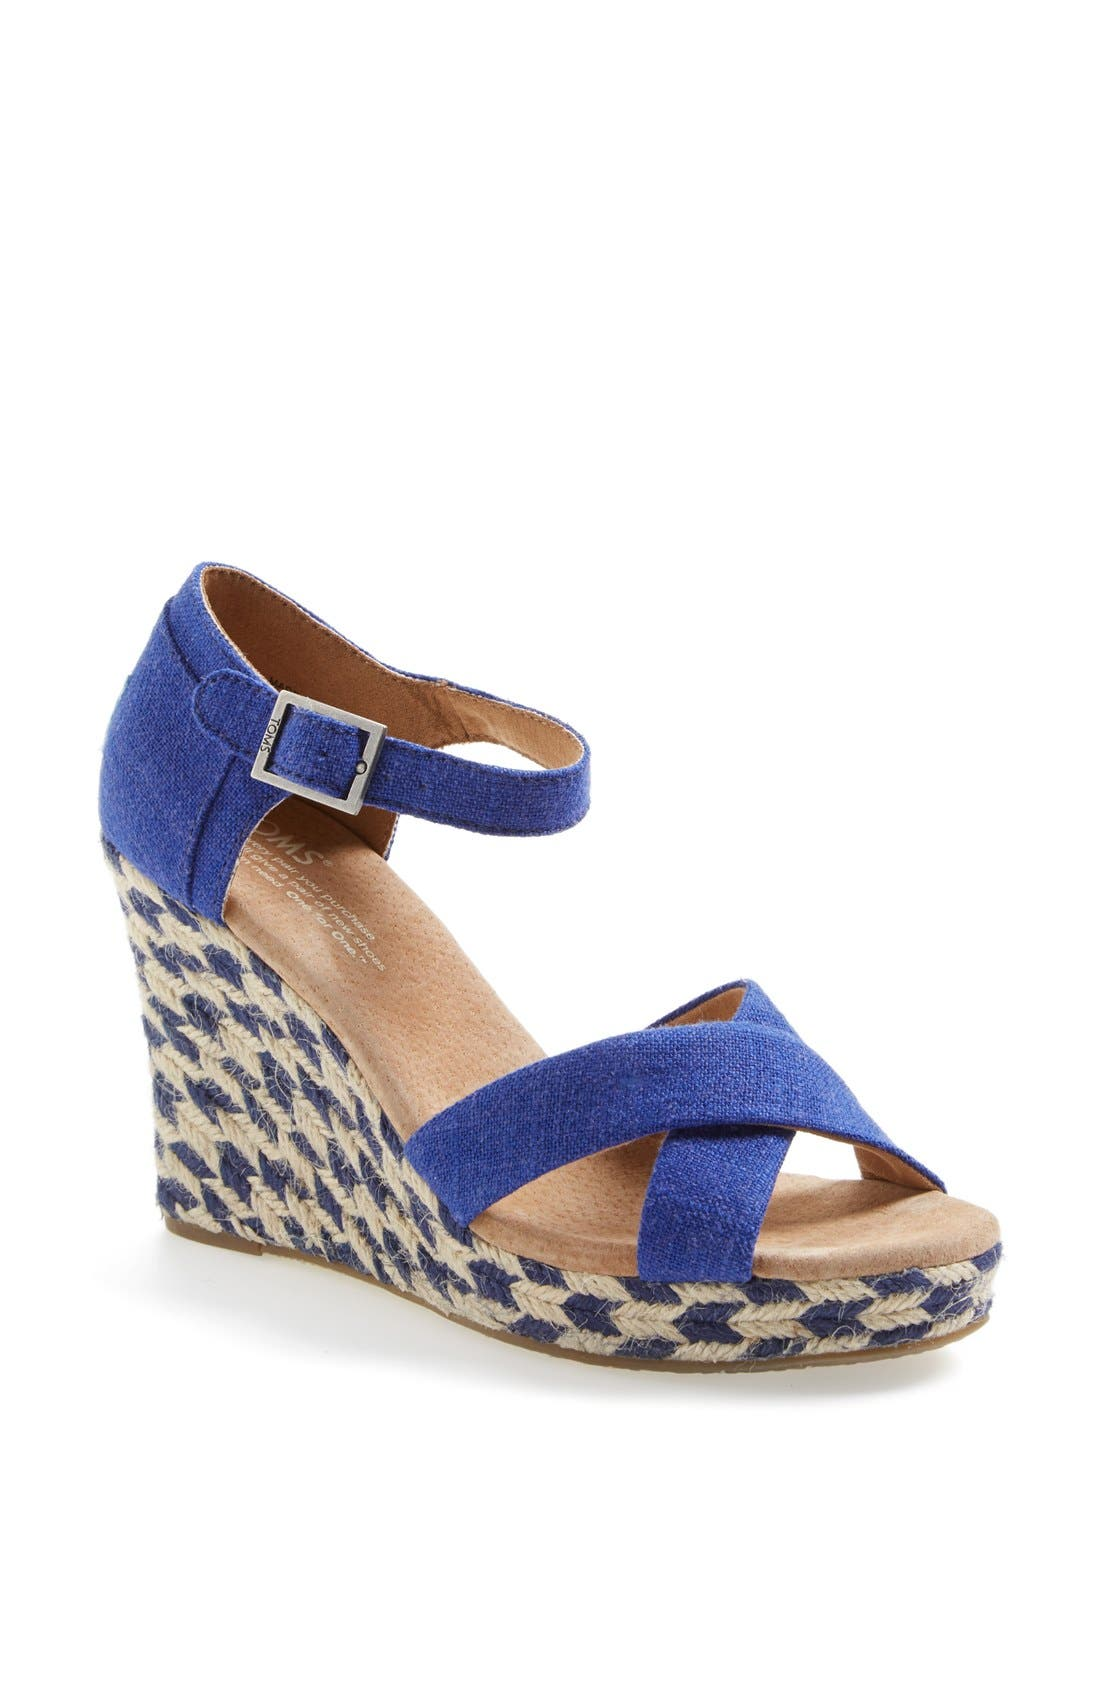 Main Image - TOMS 'Mixed Rope' Wedge Sandal